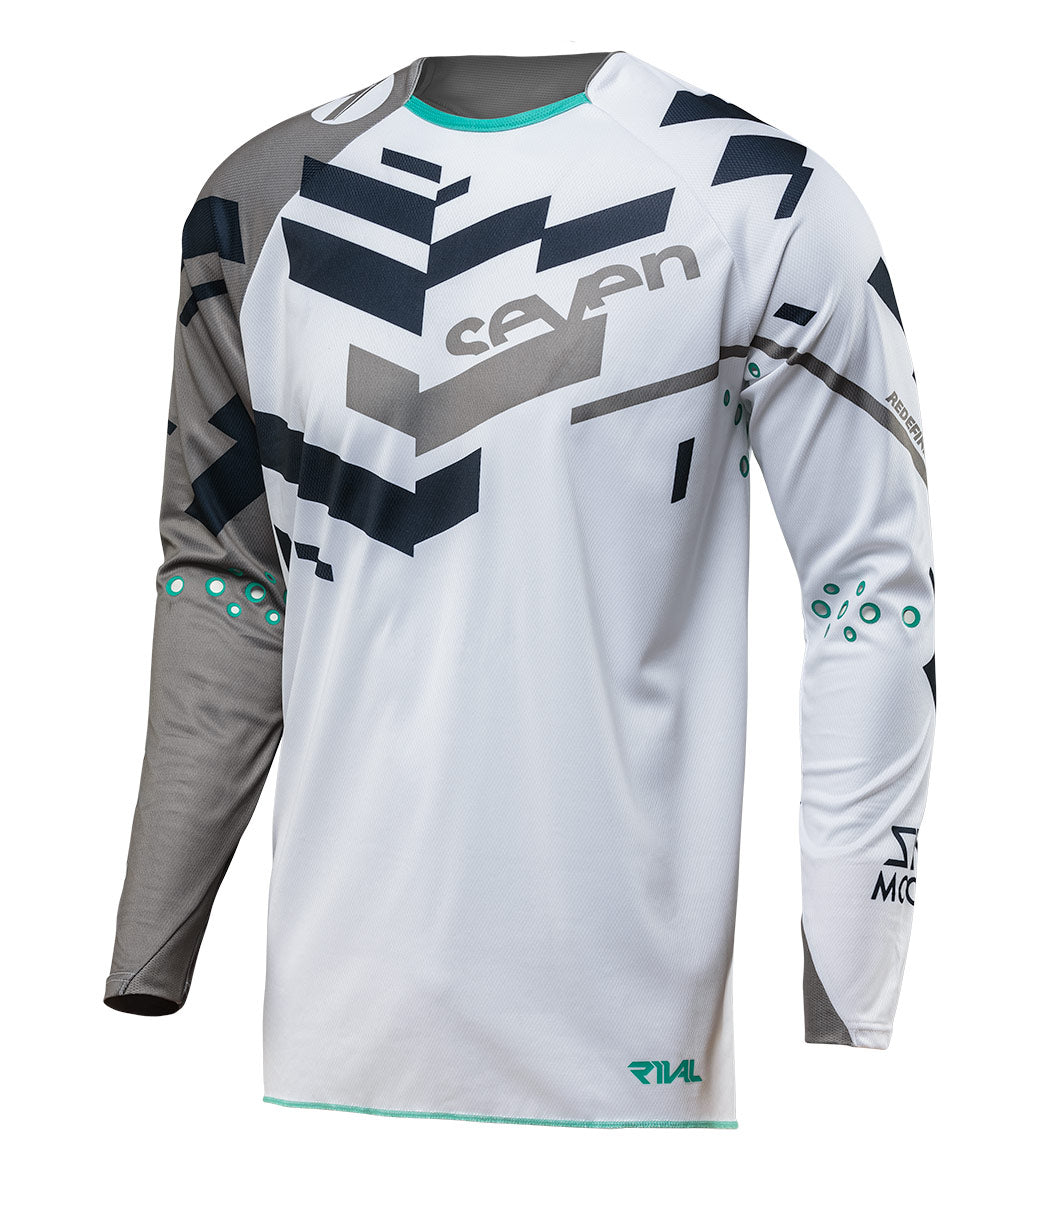 Rival Volume Jersey - Gray